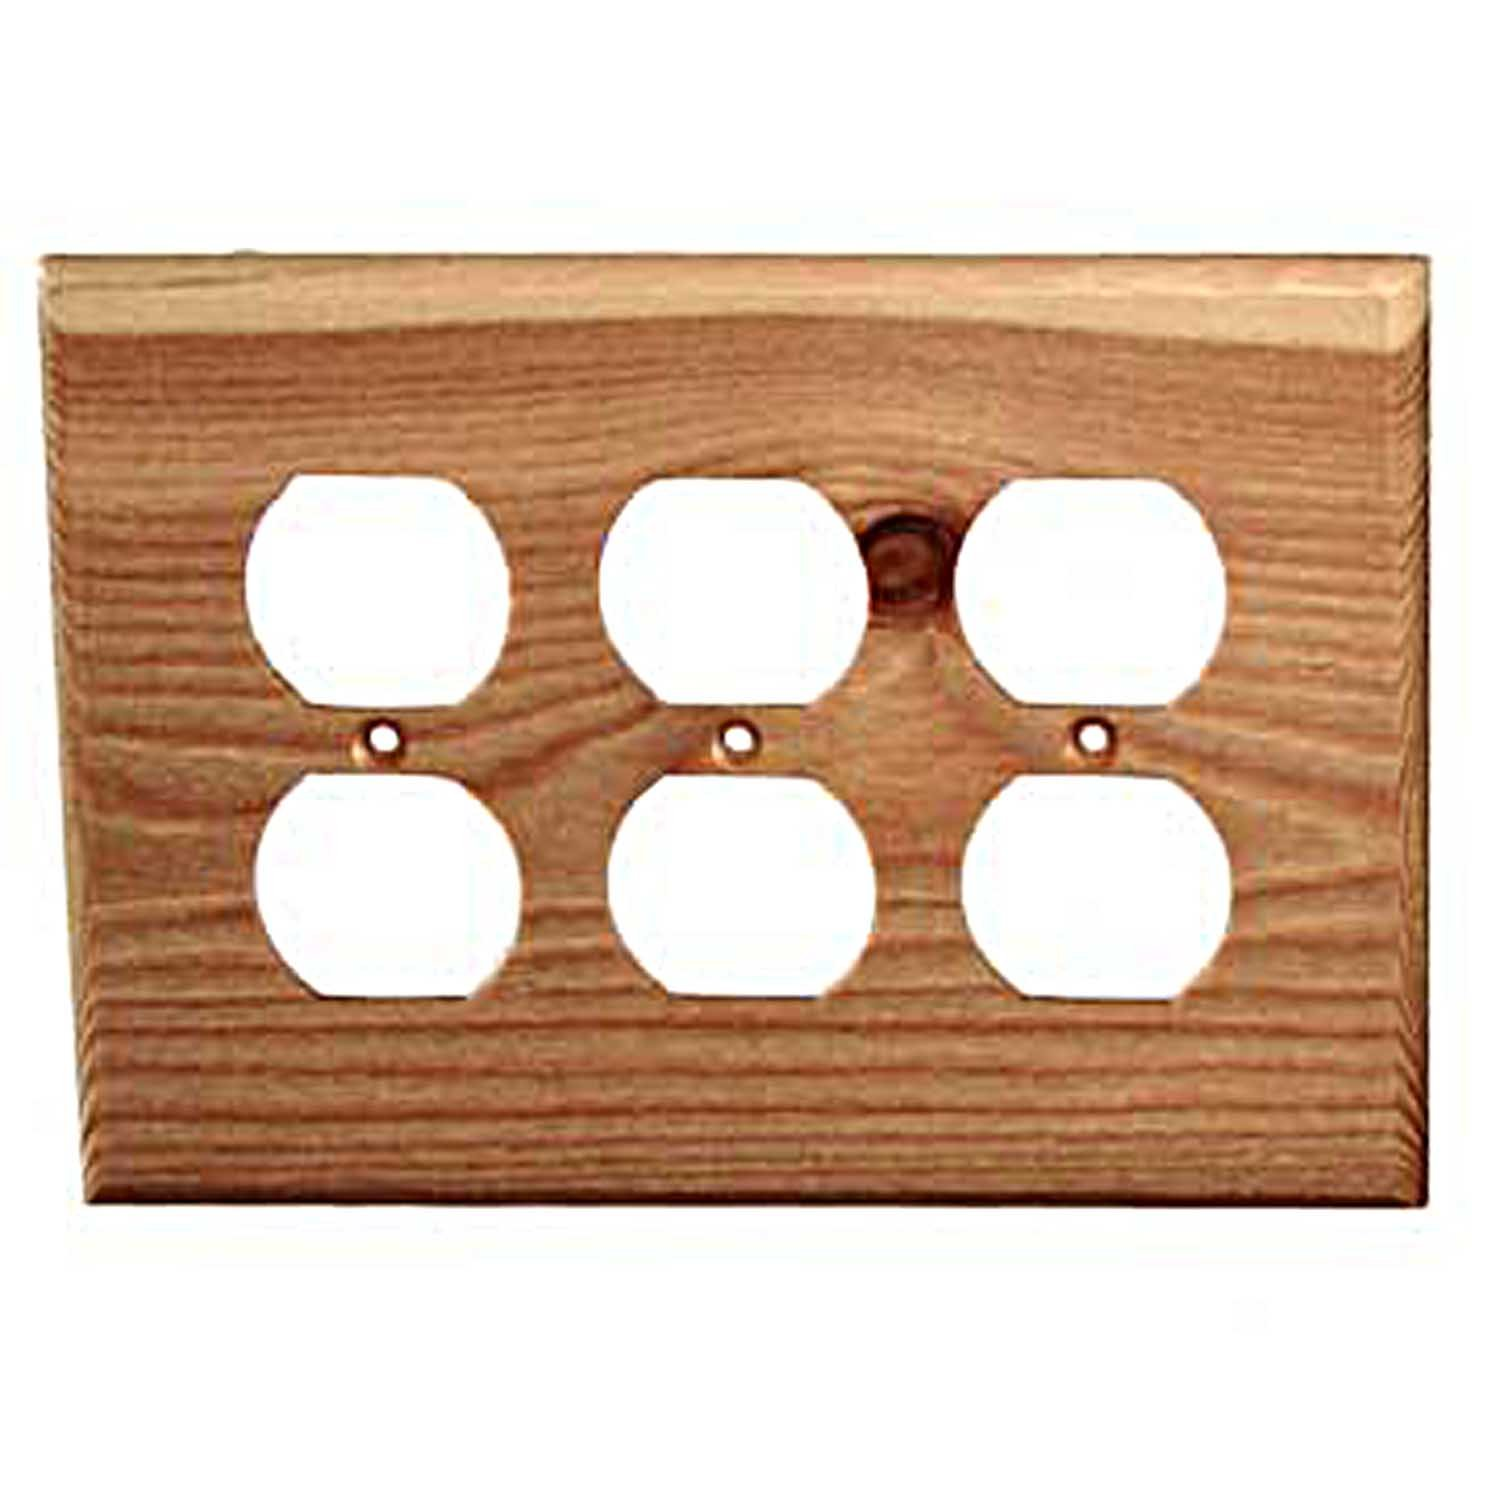 Sierra Lifestyles Traditional Switch Plate, 3 Duplex, Douglas Fir by Sierra Lifestyles B0062W5S9S